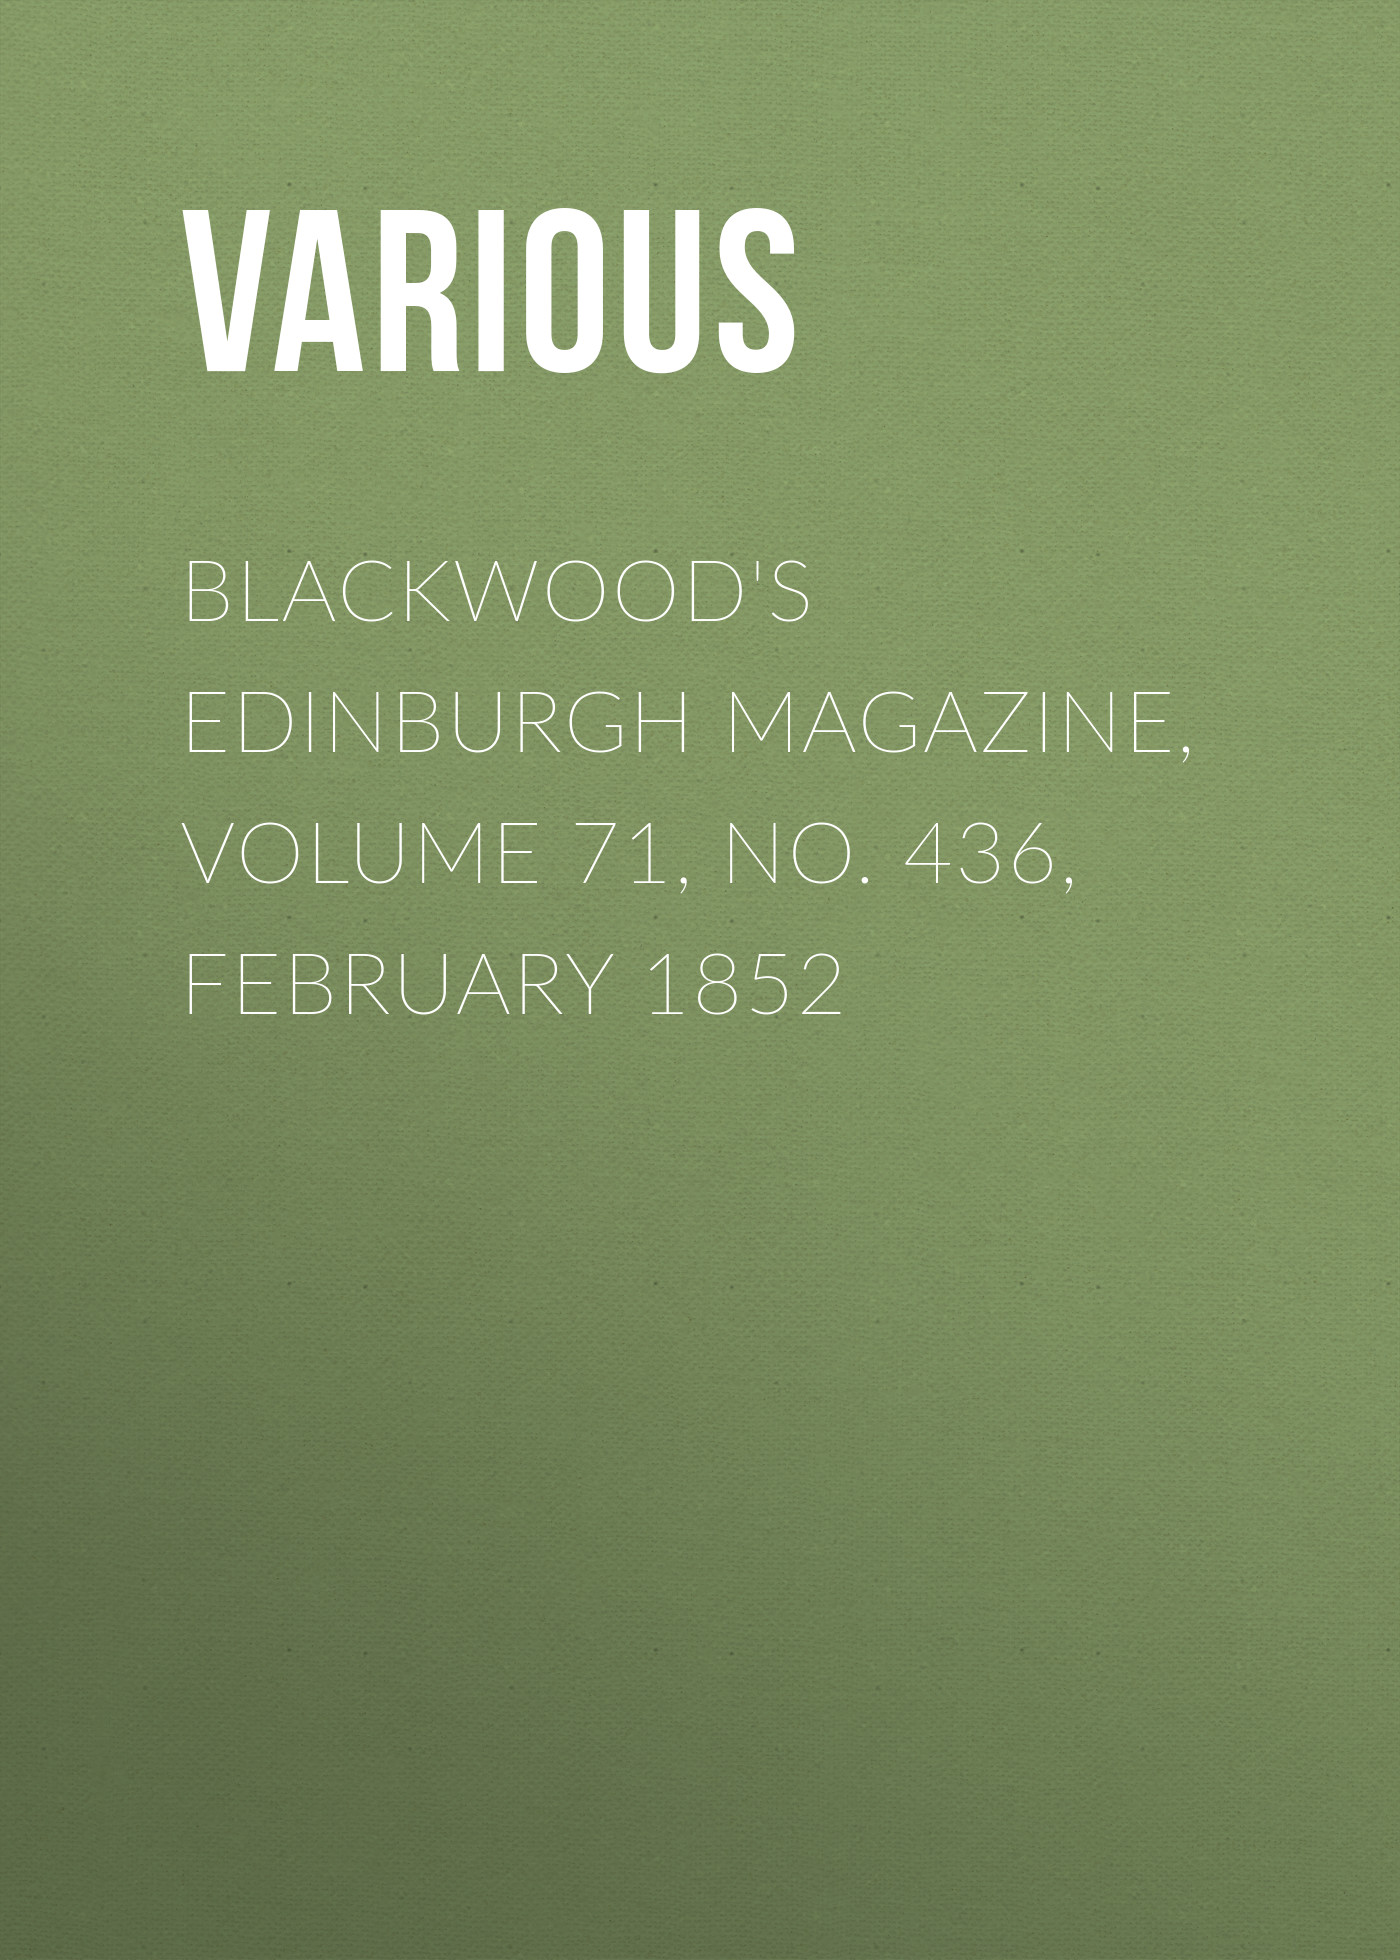 лучшая цена Various Blackwood's Edinburgh Magazine, Volume 71, No. 436, February 1852